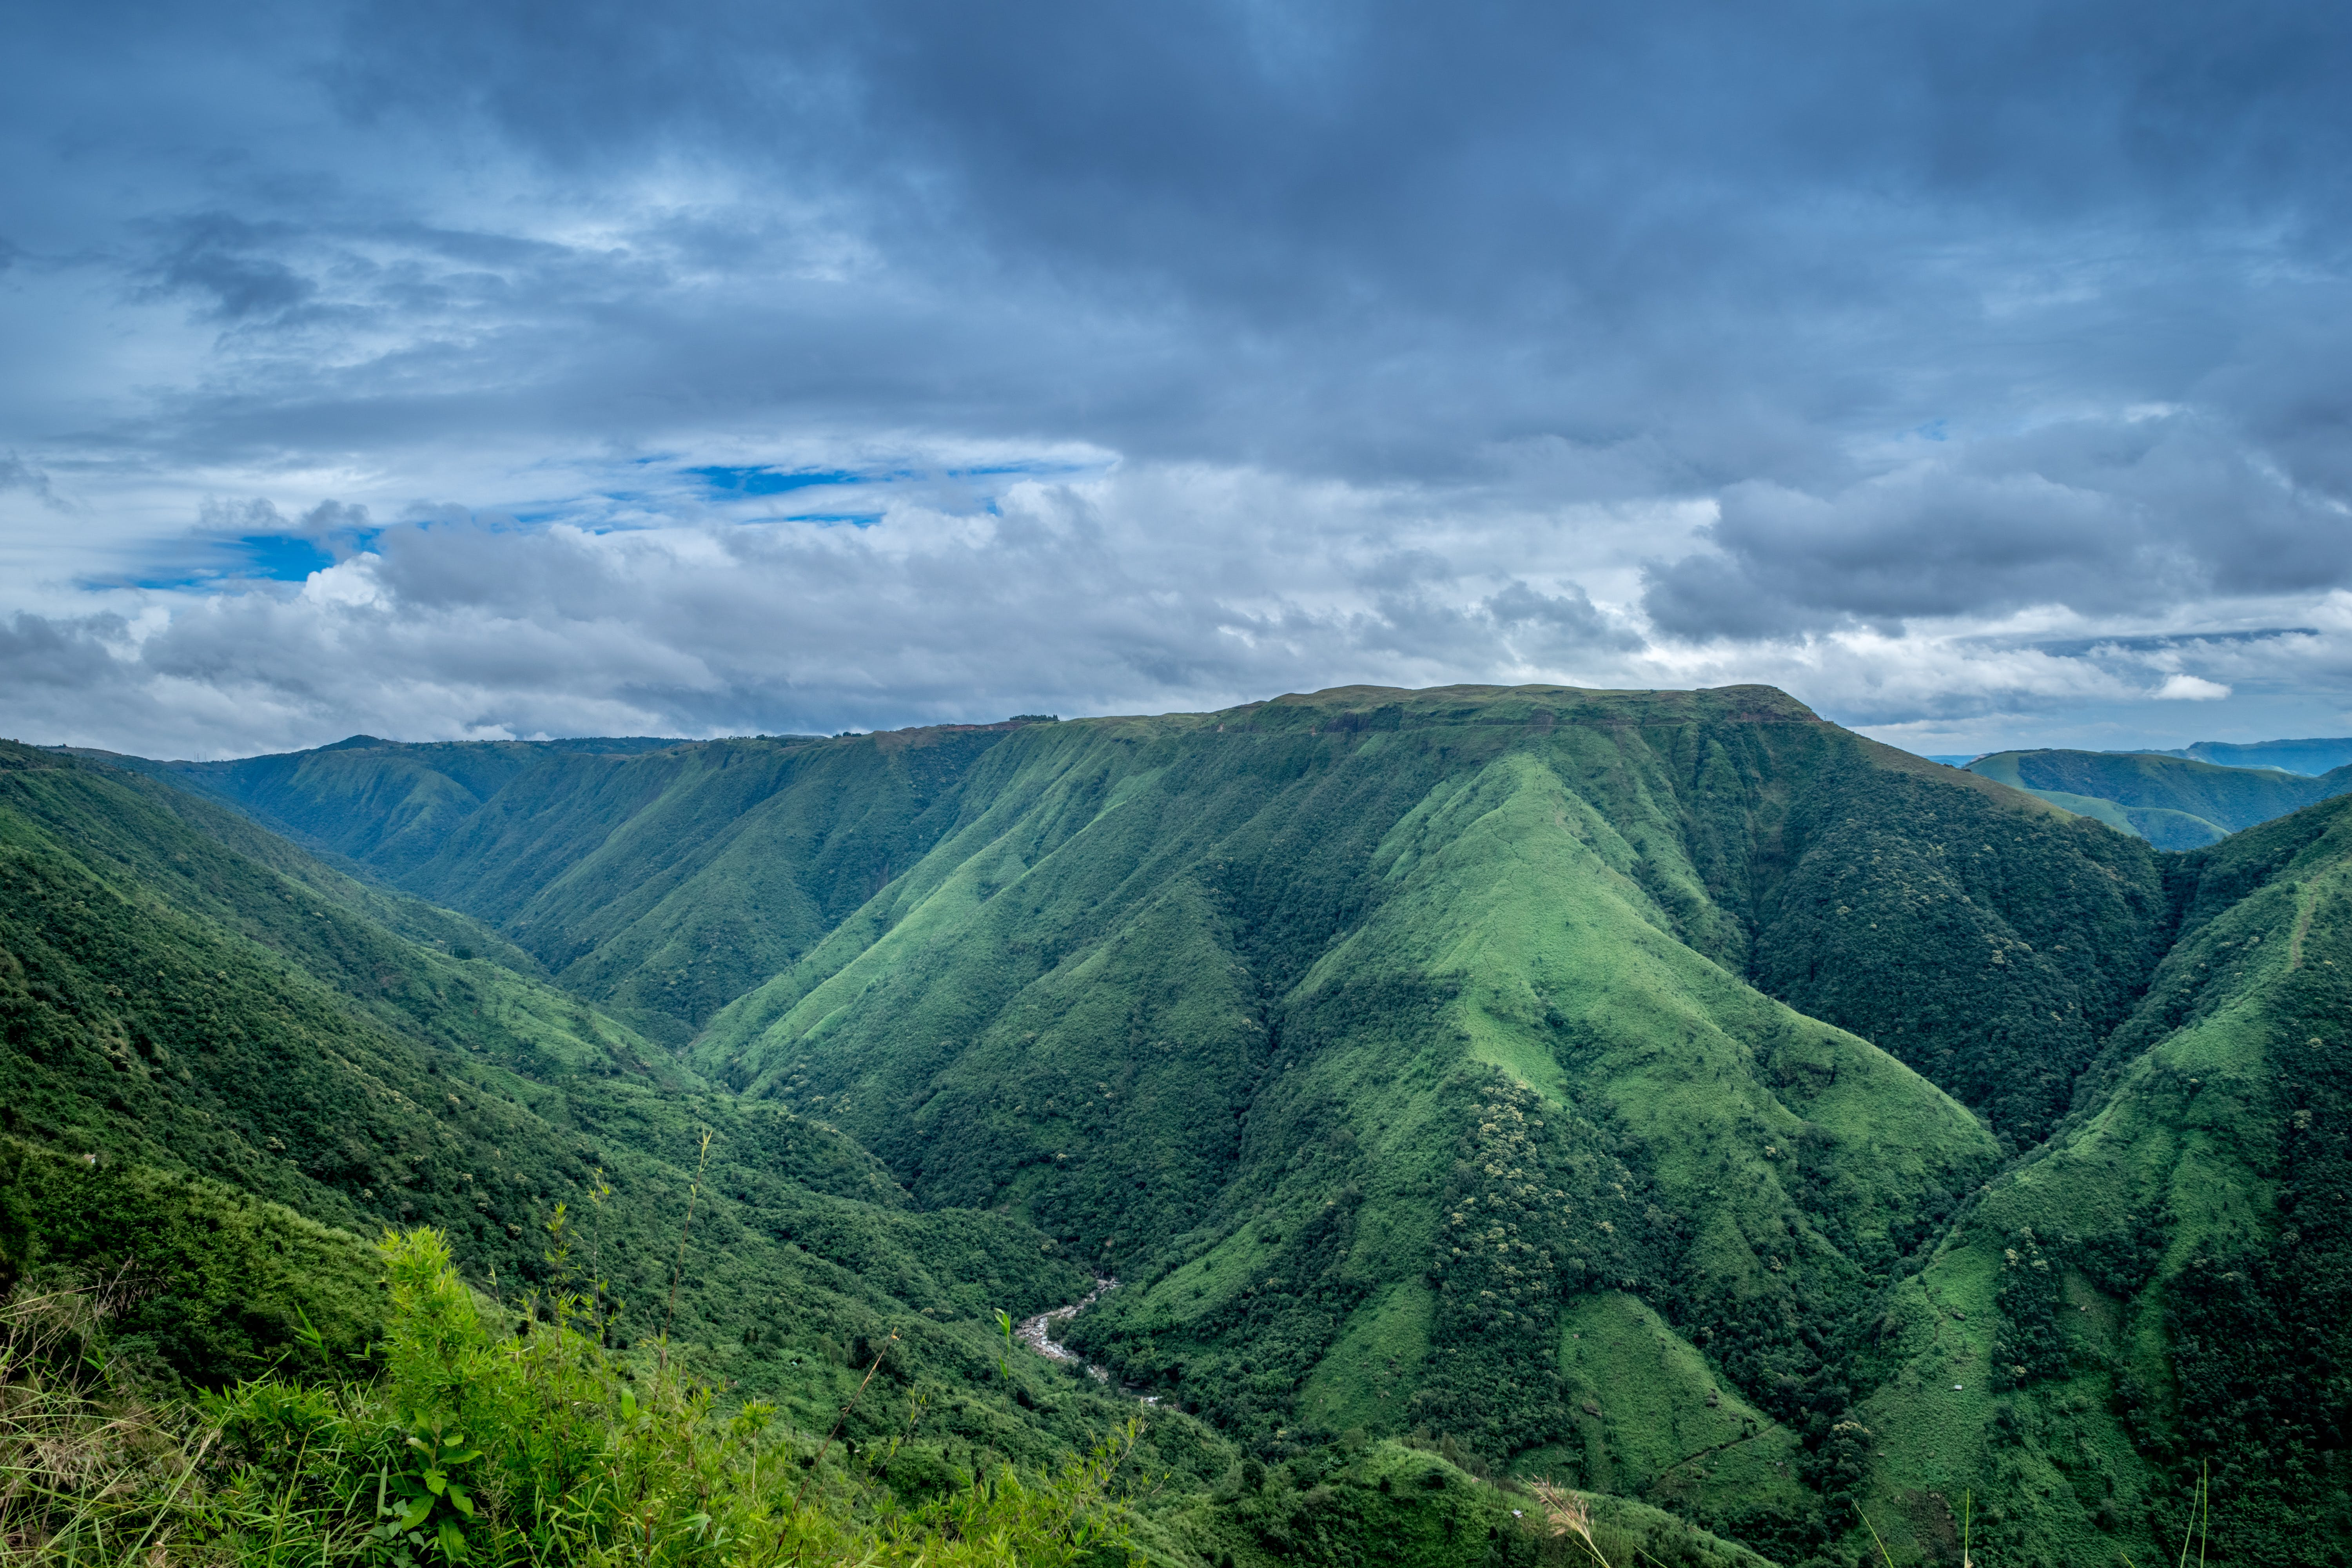 Landscape Photography of Green Mountains Under Cloudy Sky